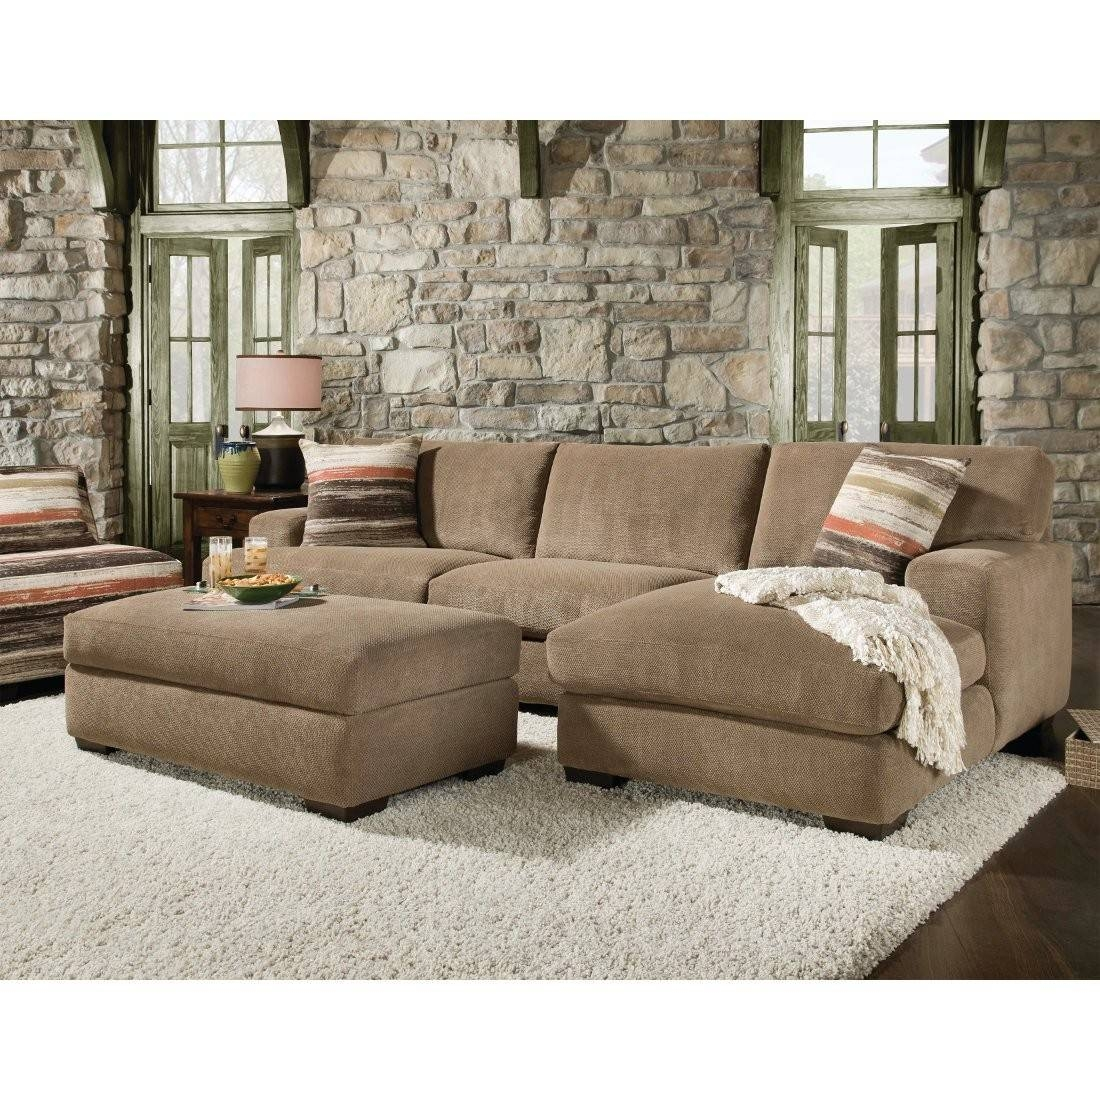 2 Piece Sectional Sofa Canada | Tehranmix Decoration in Small 2 Piece Sectional Sofas (Image 2 of 30)